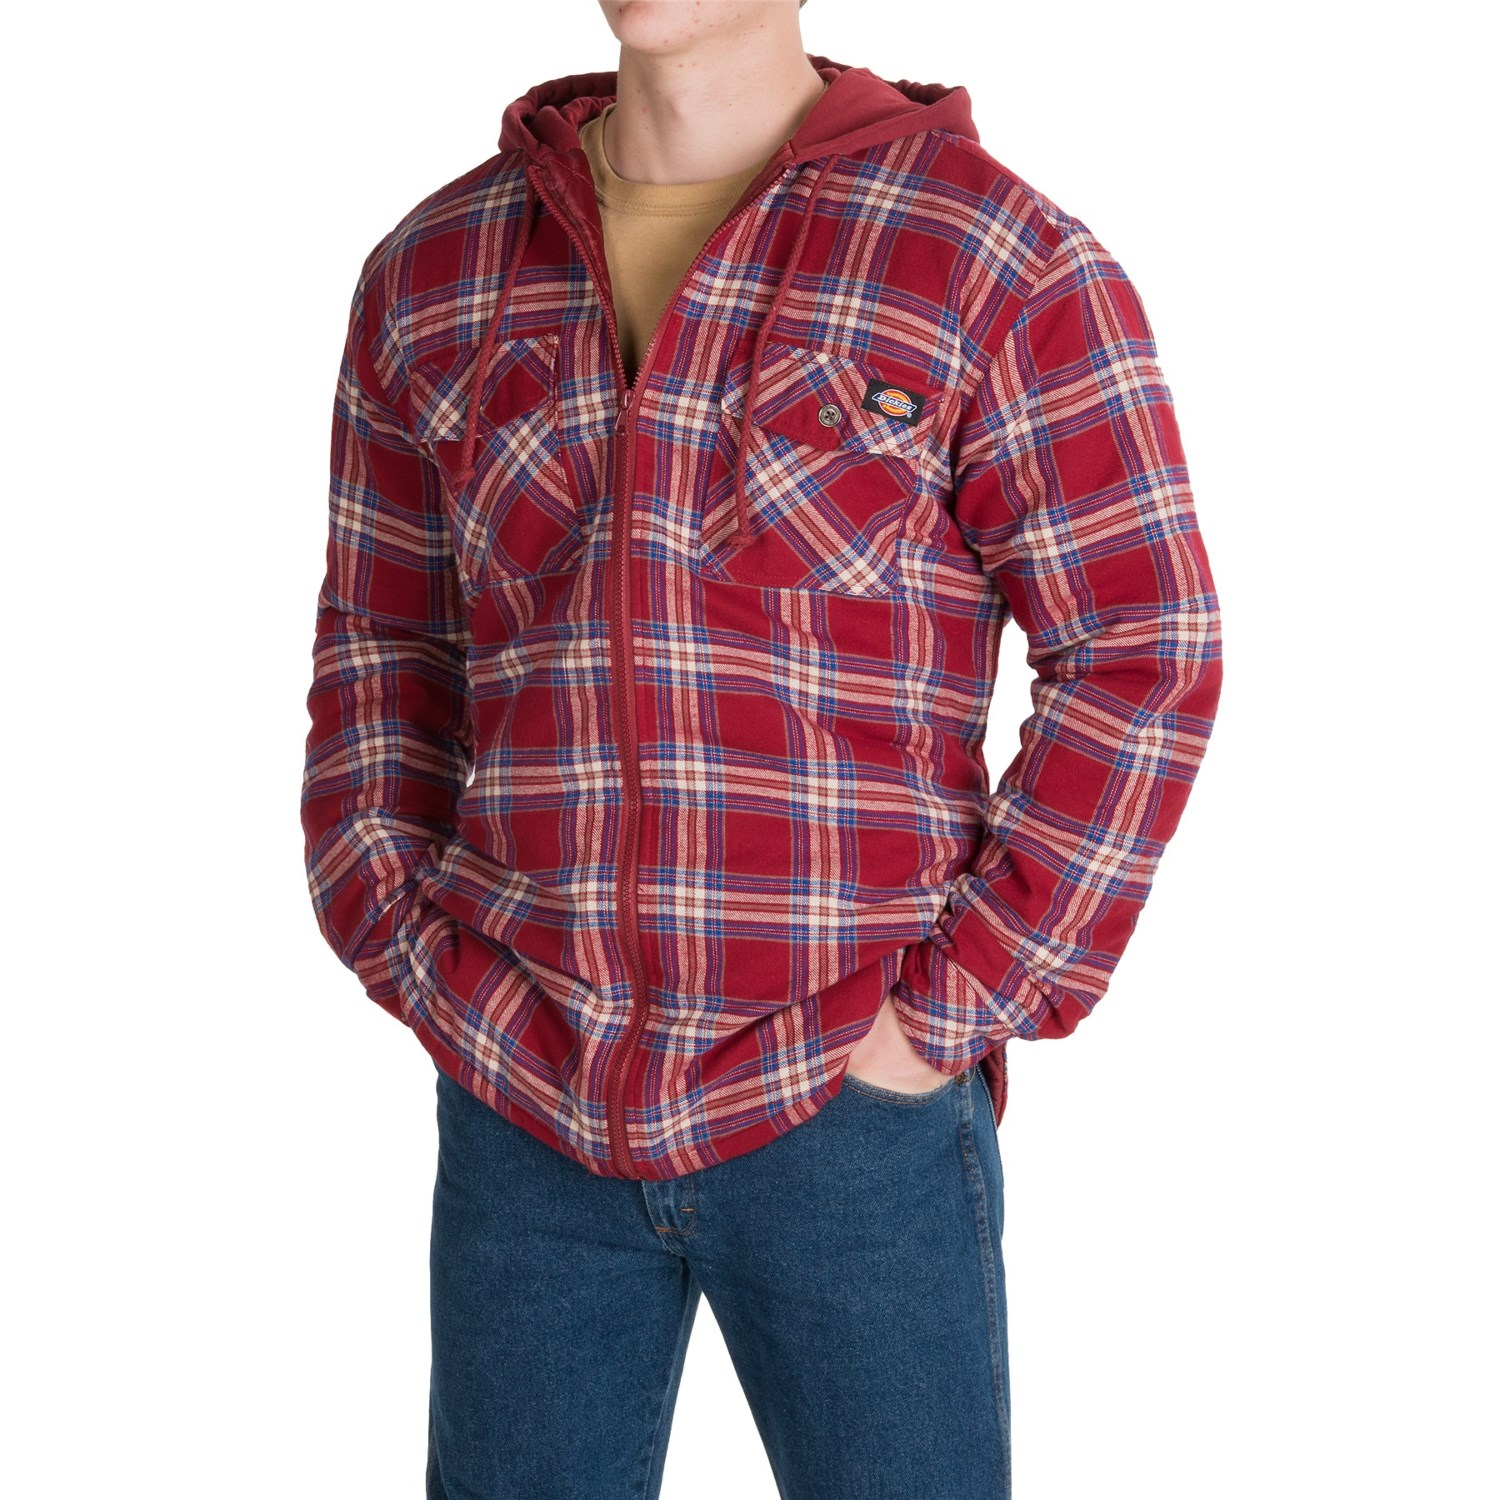 Free shipping BOTH ways on quilted jacket with plaid lining, from our vast selection of styles. Fast delivery, and 24/7/ real-person service with a smile. Click or call